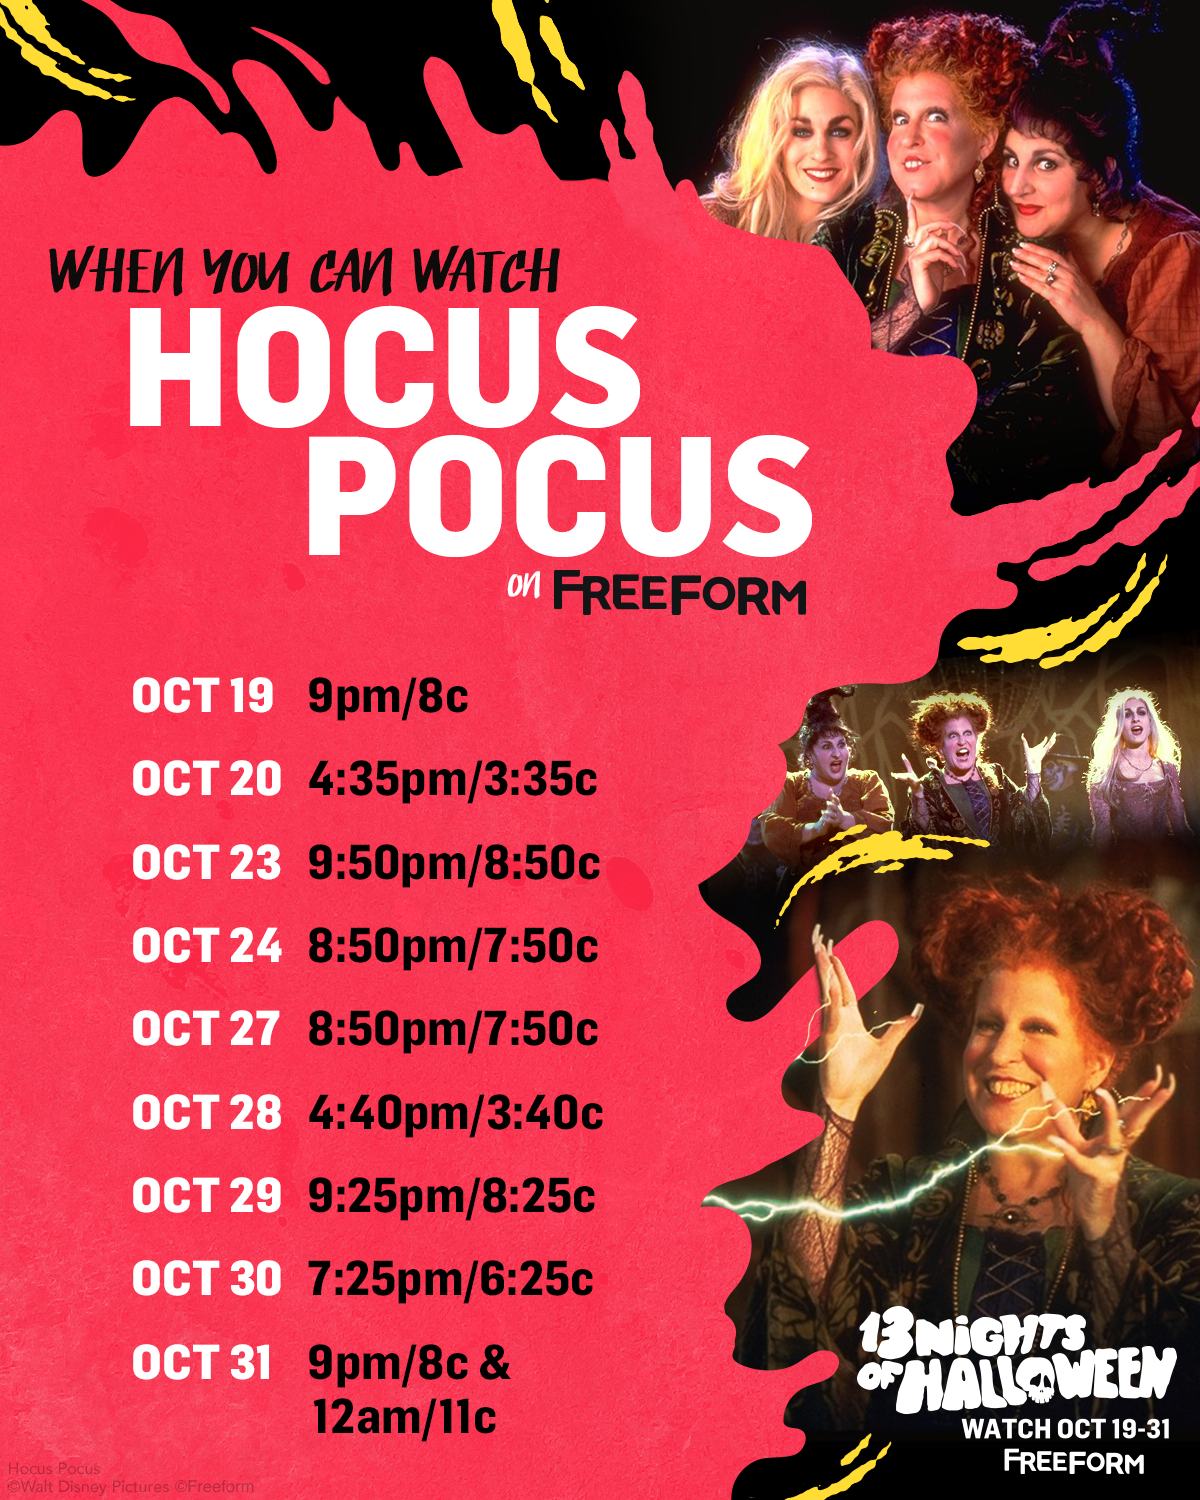 Shadowhunters - The Shadowhunters Cast Are Just As Obsessed With Hocus Pocus As You Are! - 1013